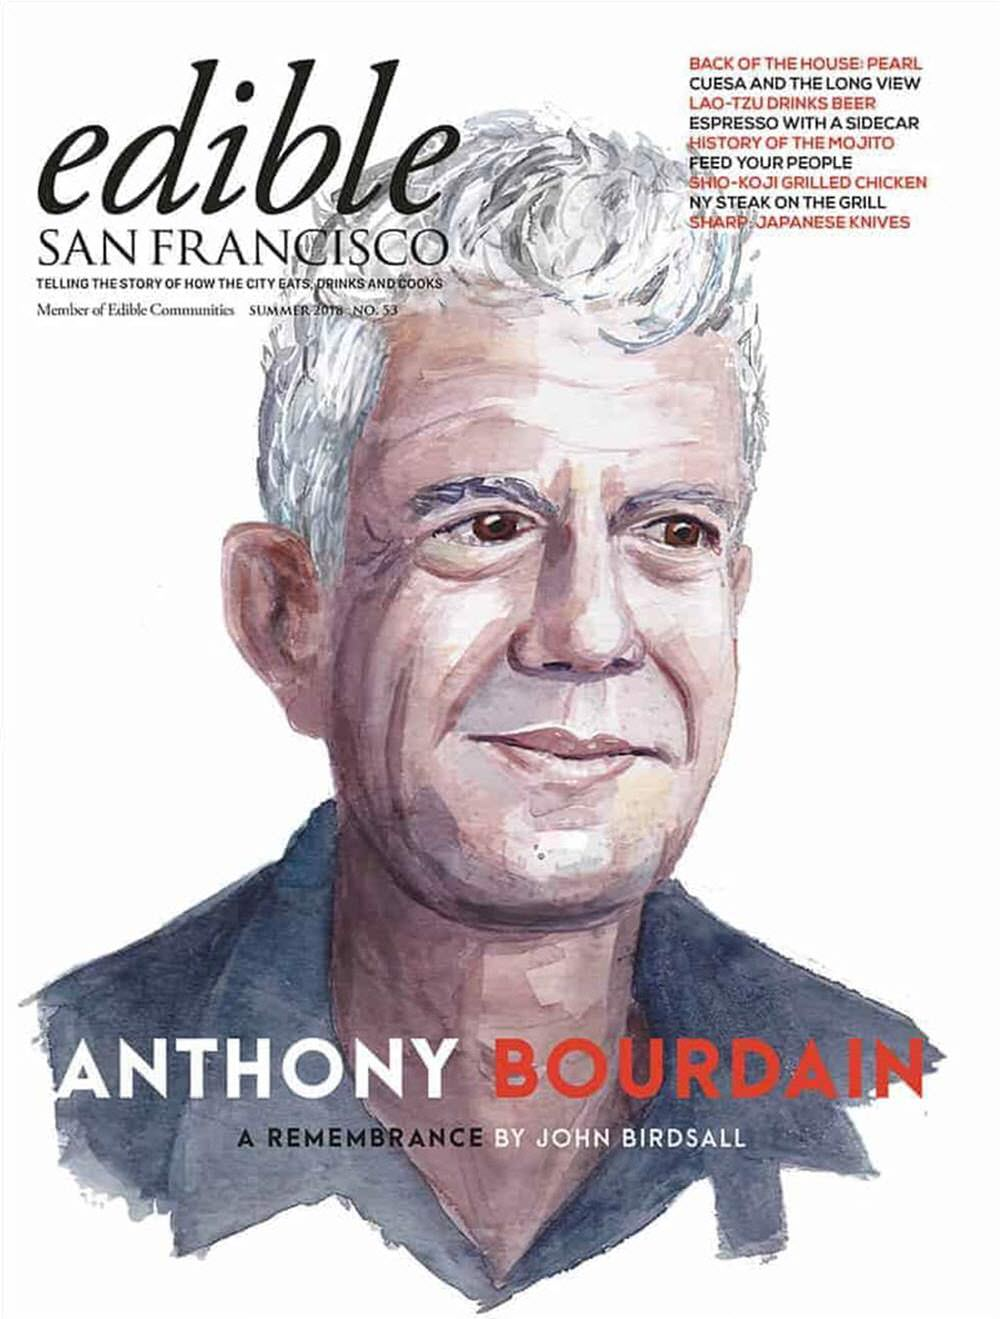 Anthony Bourdain  - DB101-a